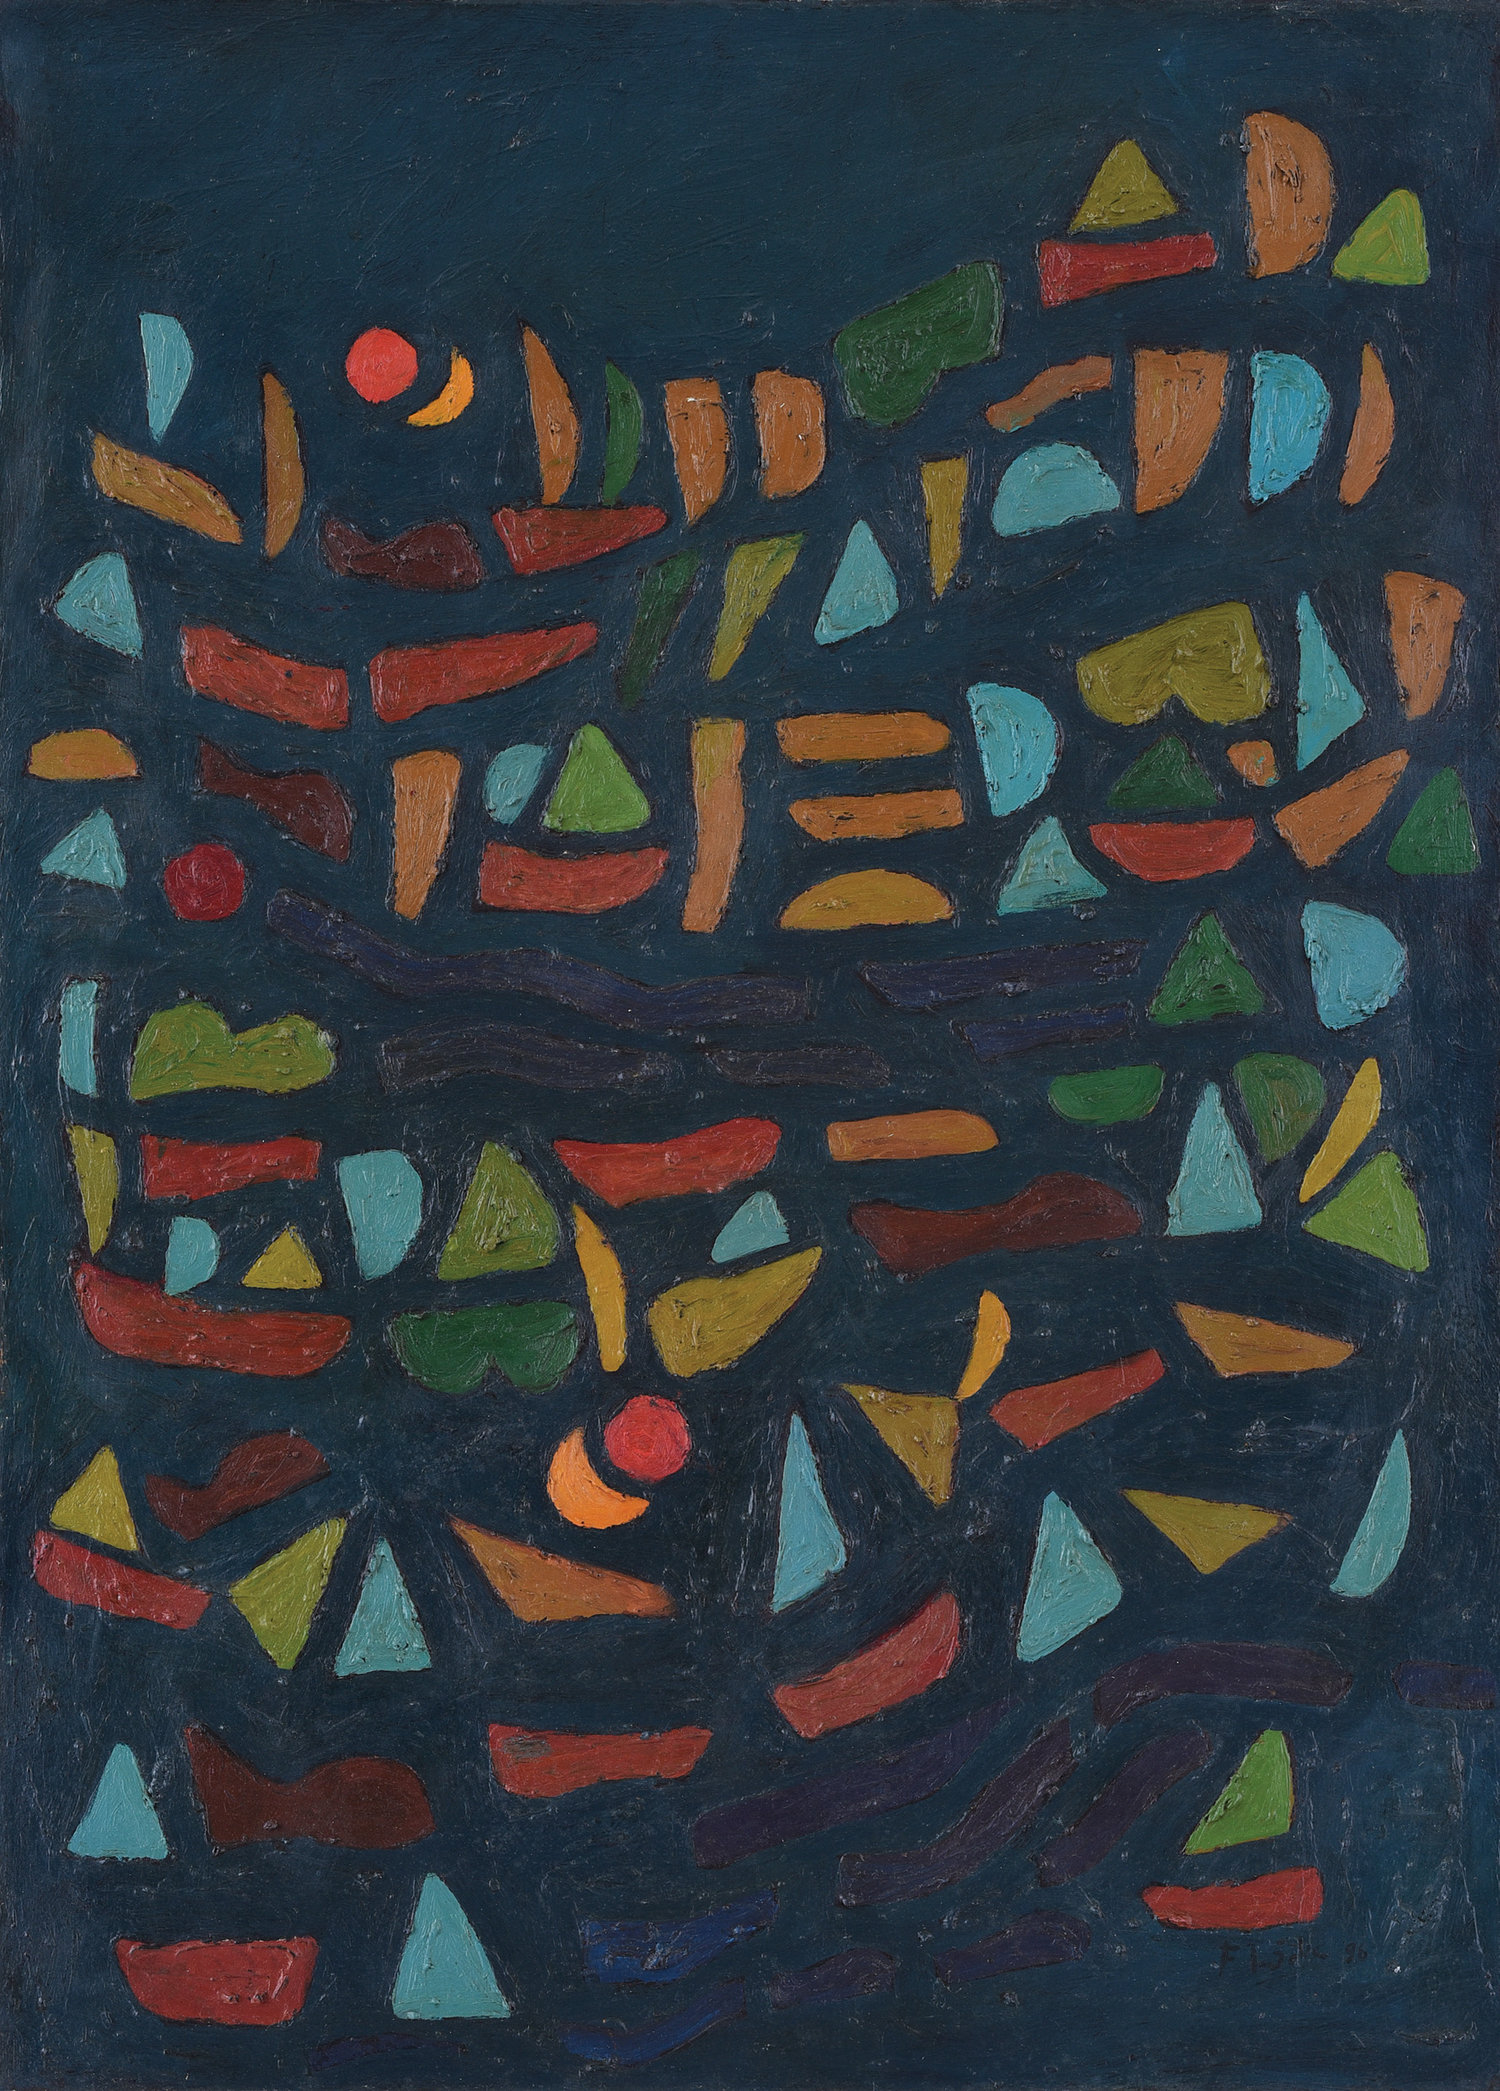 Fadjar Sidik, Bentuk Bertumpuk dengan Dua Matahari (Stacked Forms with Two Suns), oil on canvas, 90 x 65 cm, 1996